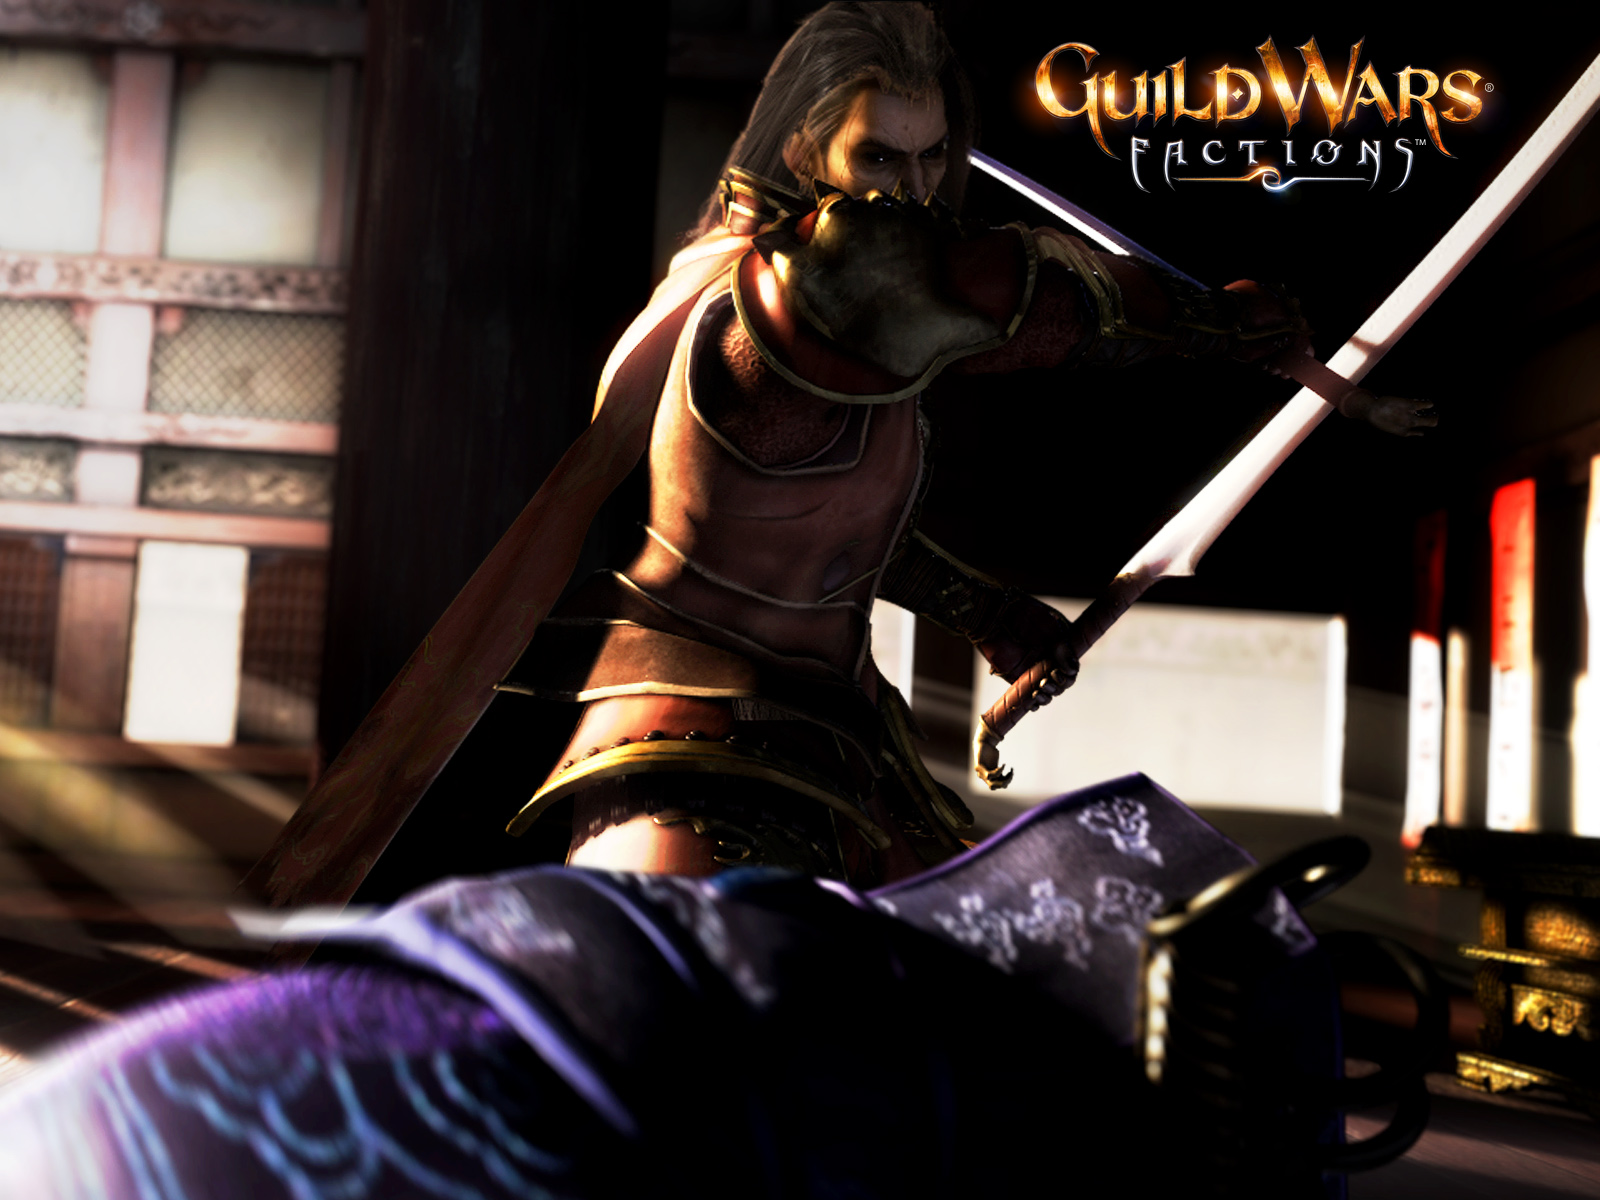 Guild Wars Factions wallpapers Guild Wars Factions stock photos 1600x1200